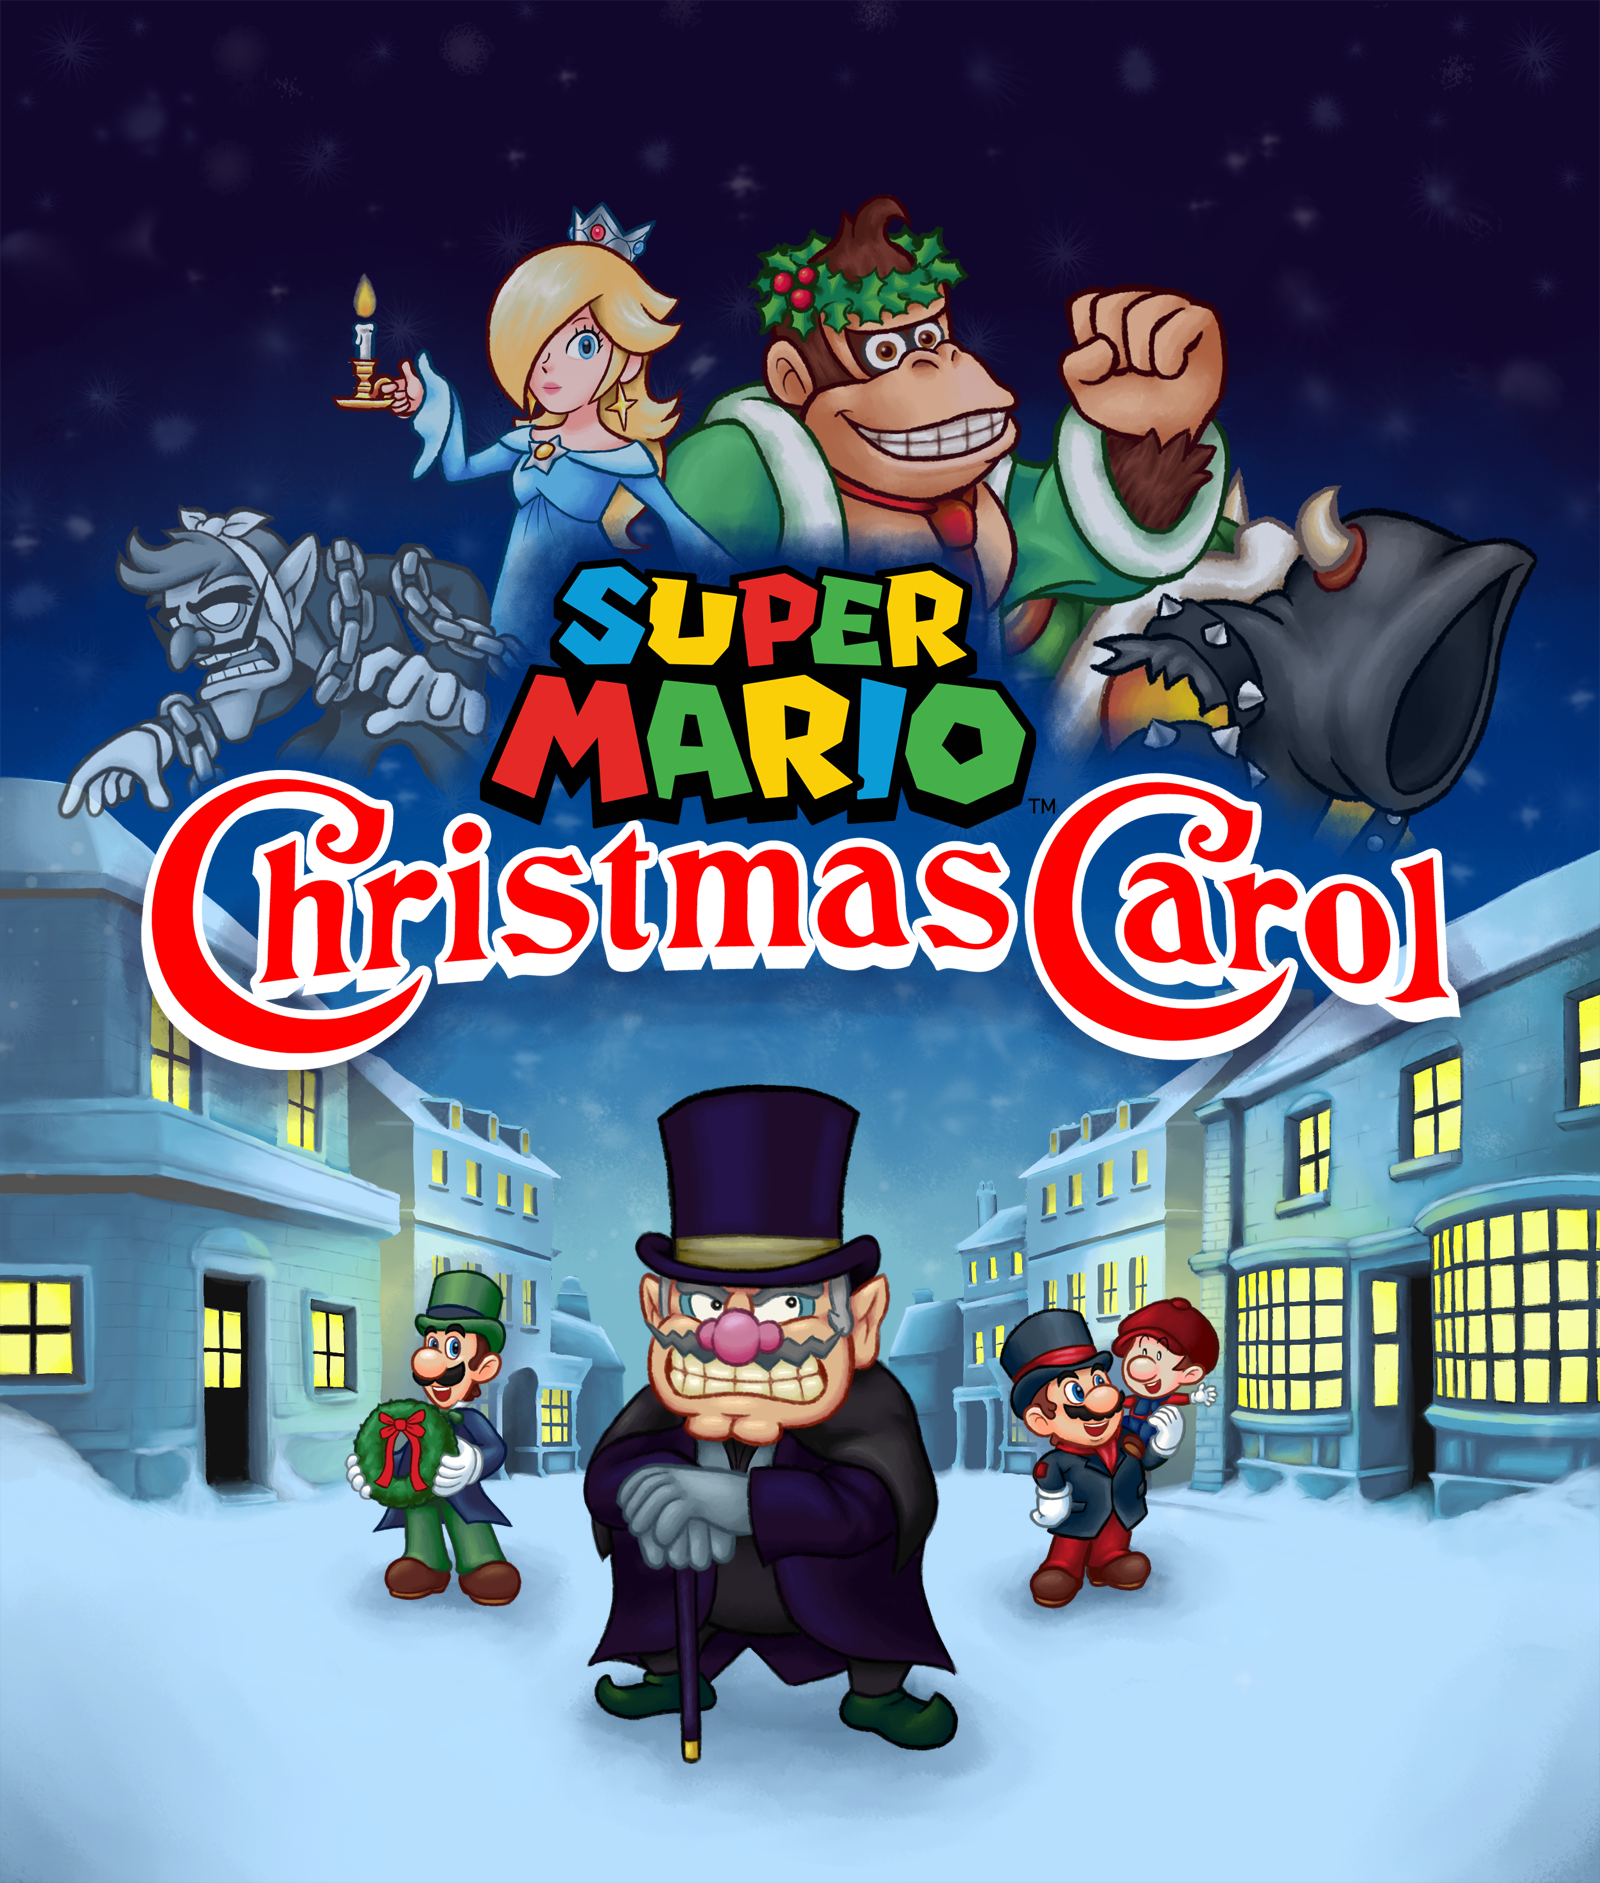 Super Mario Christmas.Super Mario Christmas Carol By P Fritz On Newgrounds